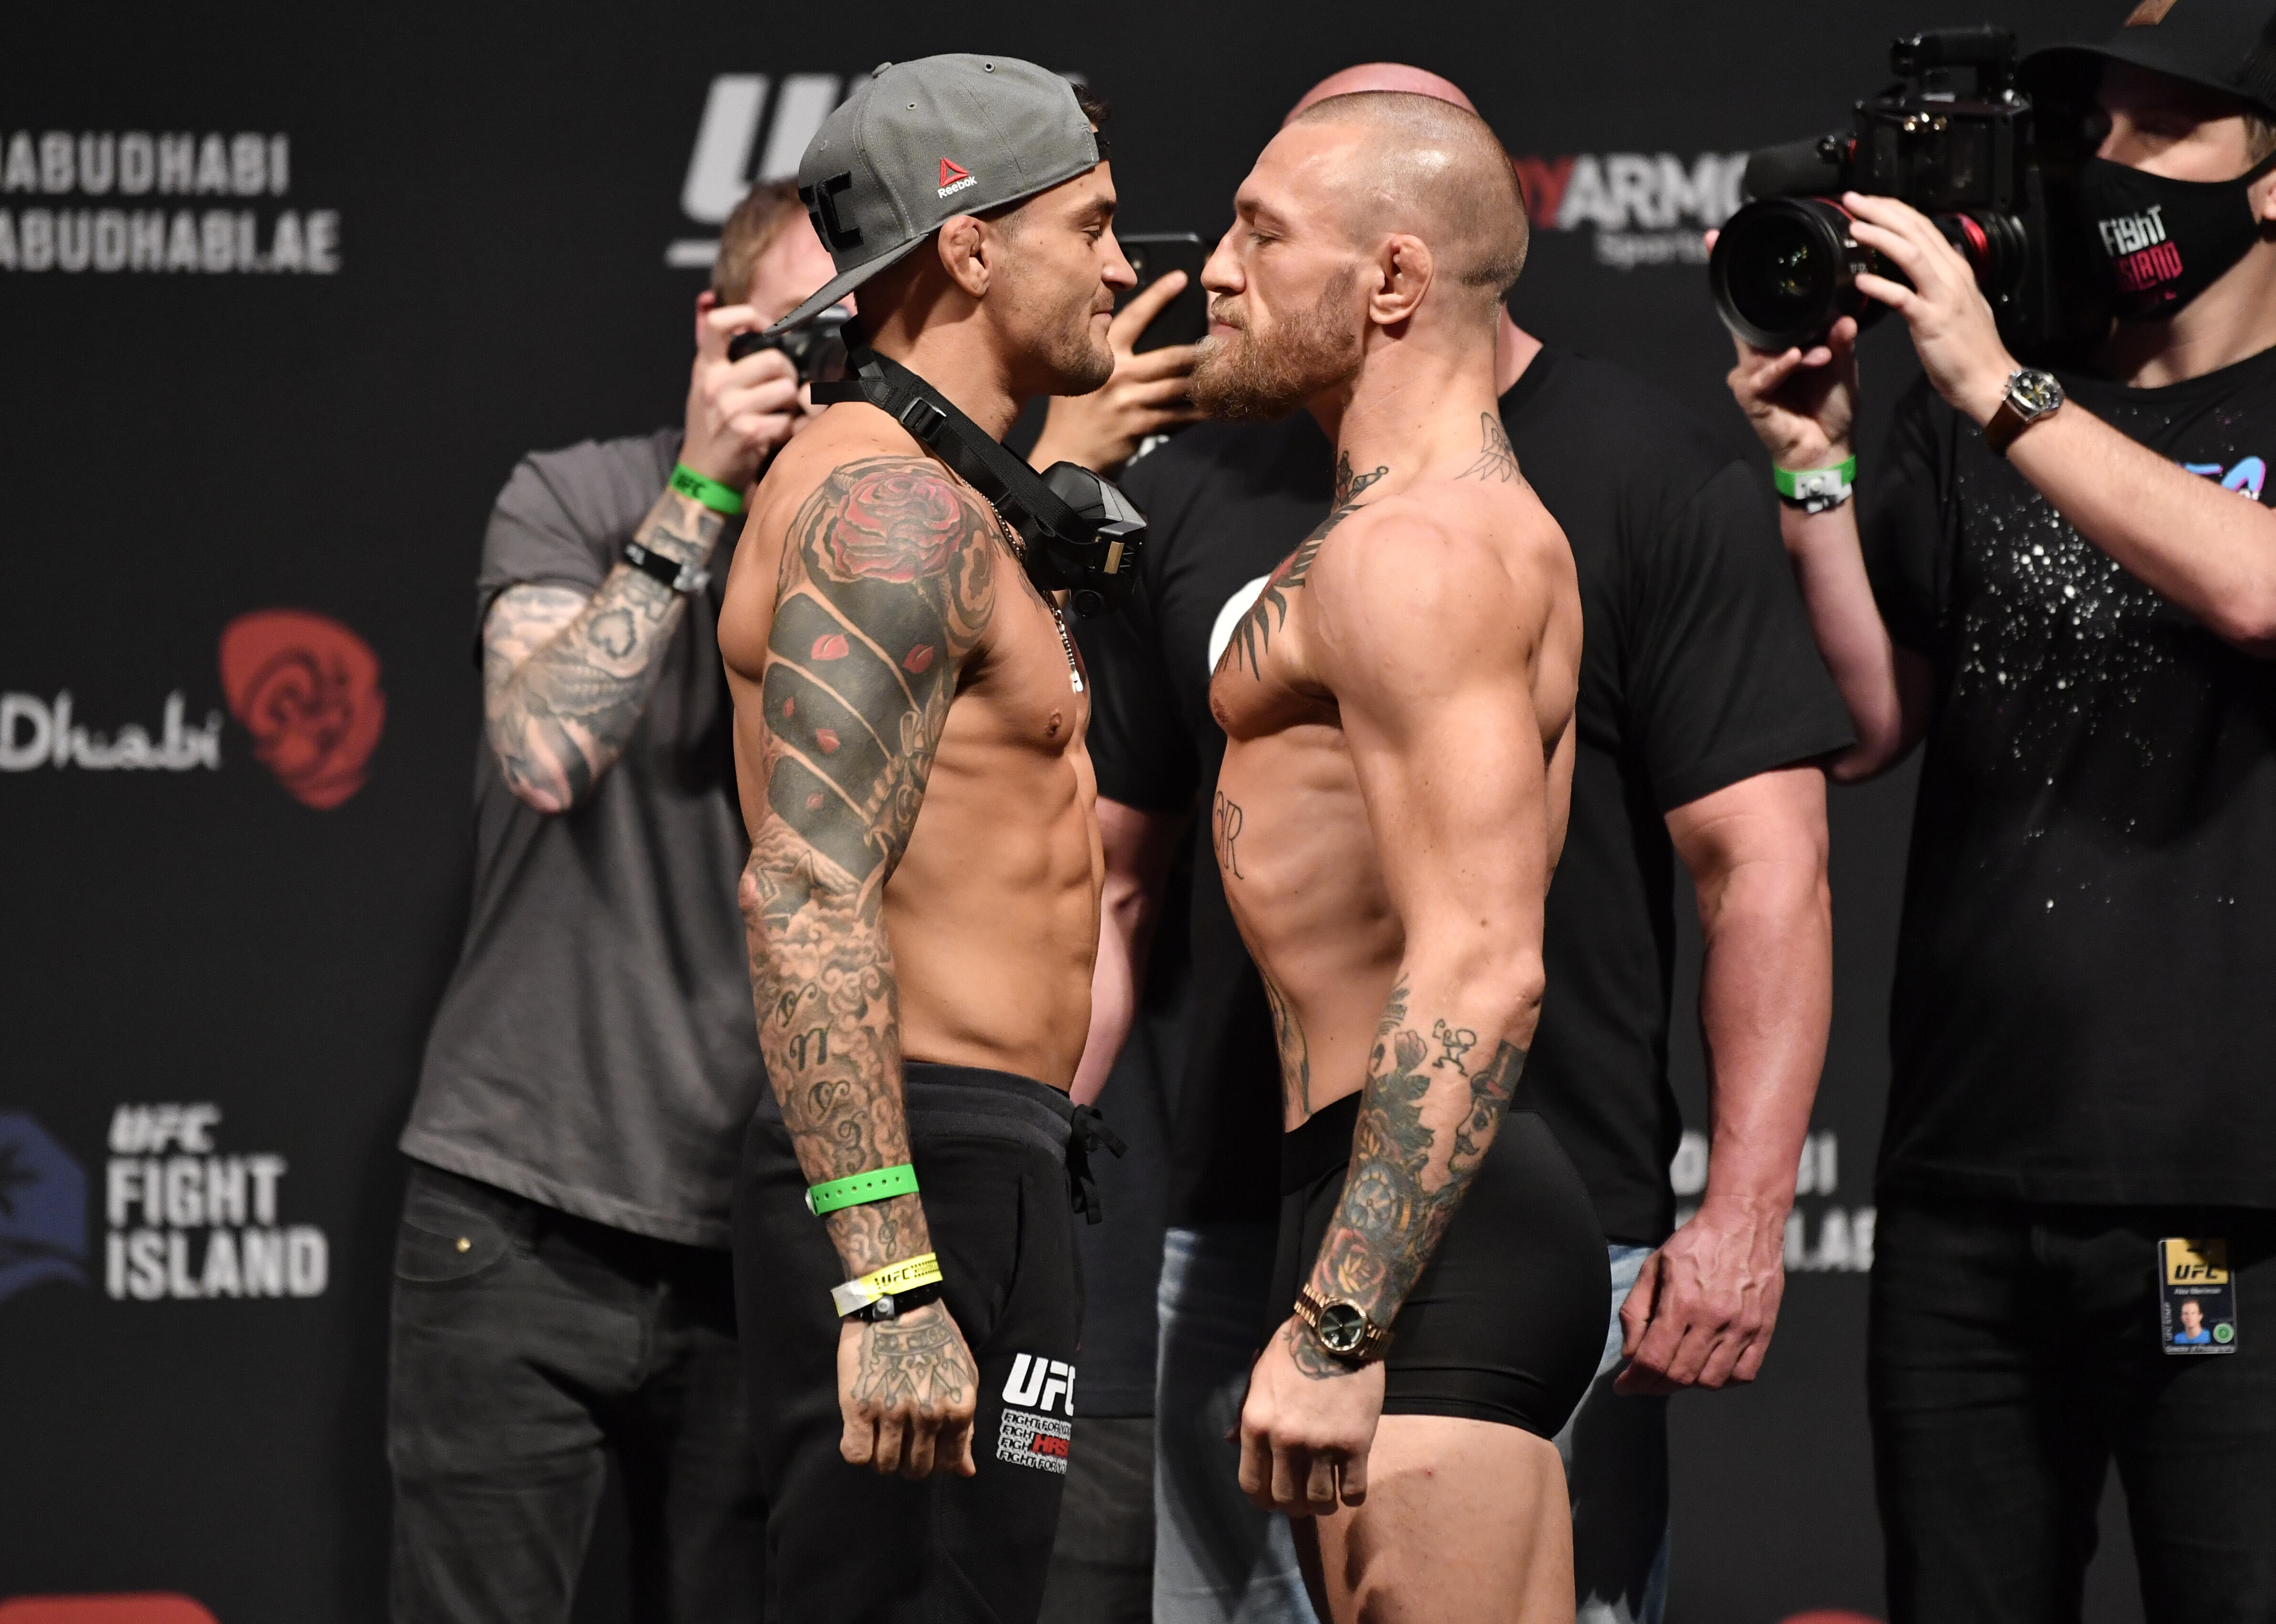 UFC 264 Conor McGregor vs Dustin Poirier: Press conference, when it takes  place, how to watch - CNET